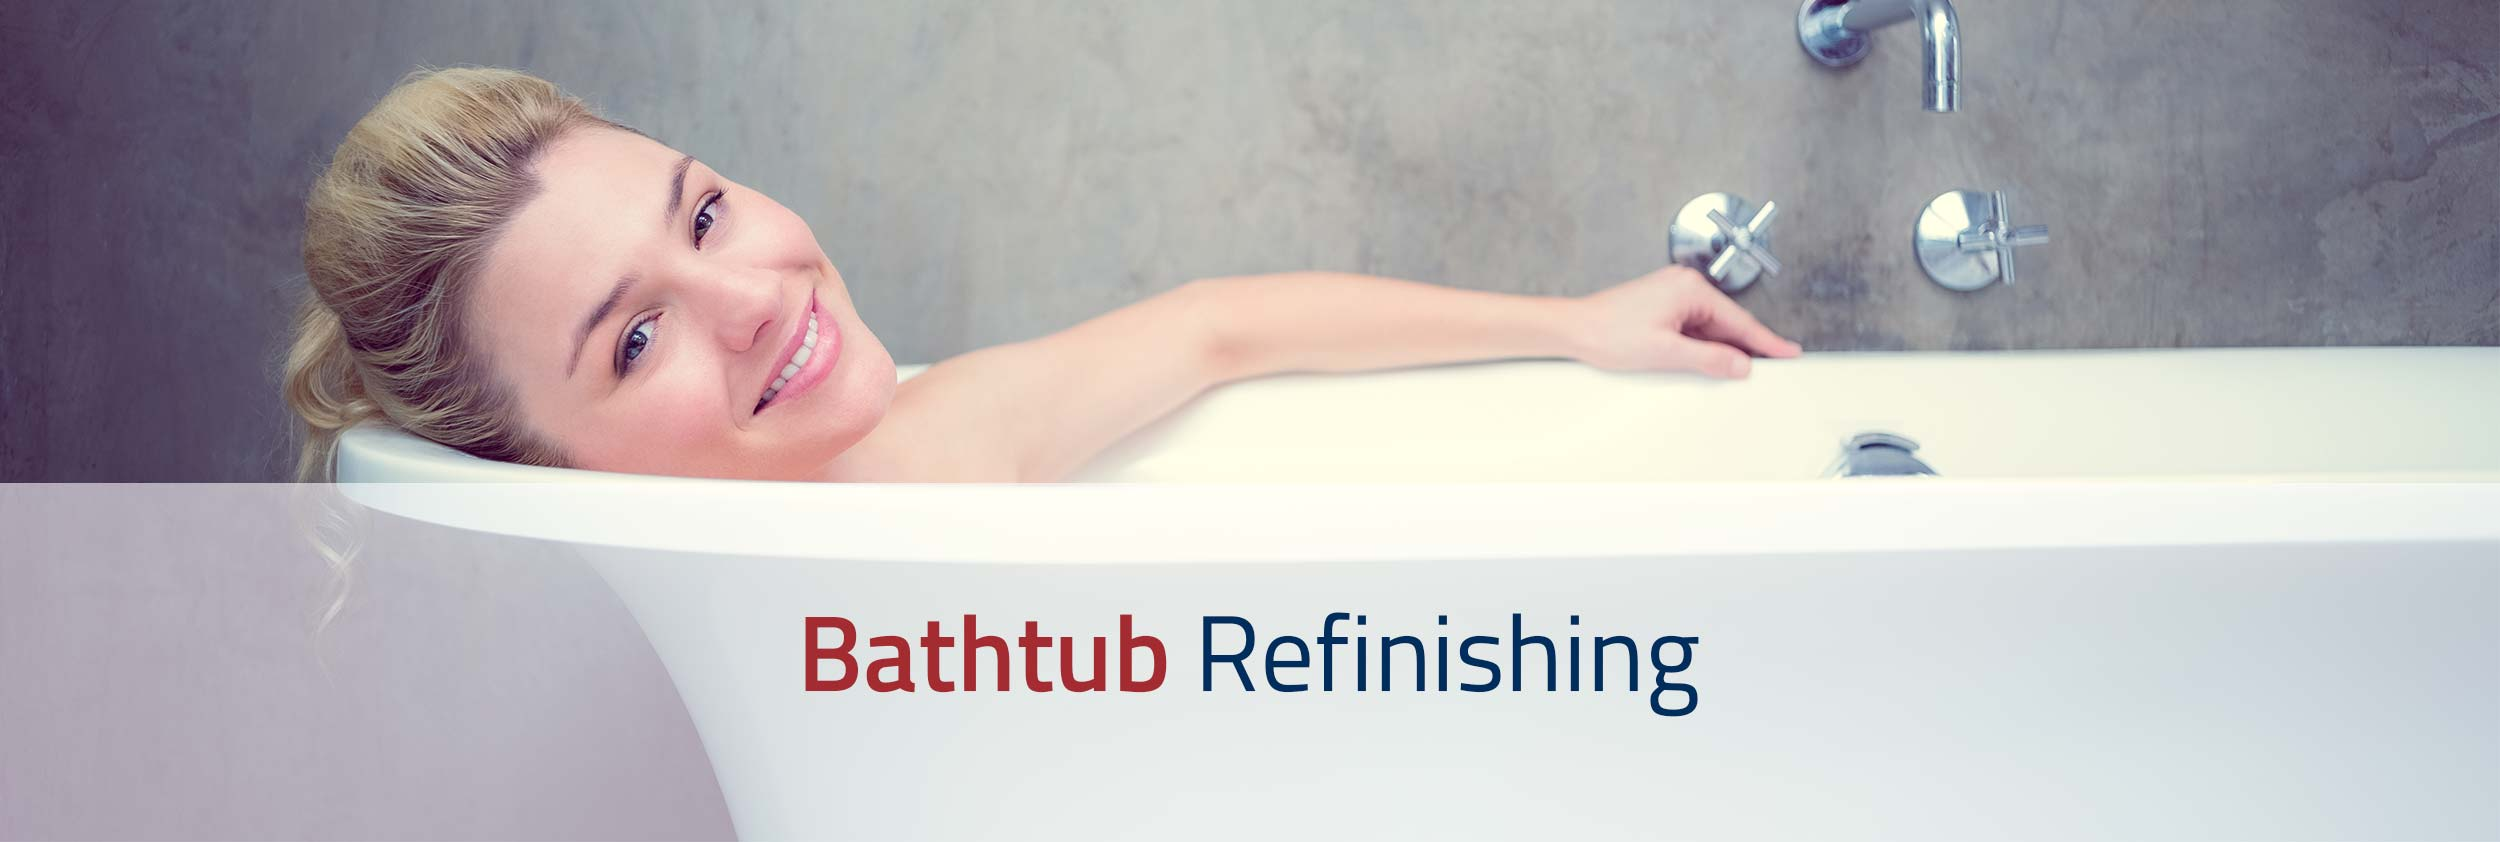 Bathtub Refinishing Marlton NJ